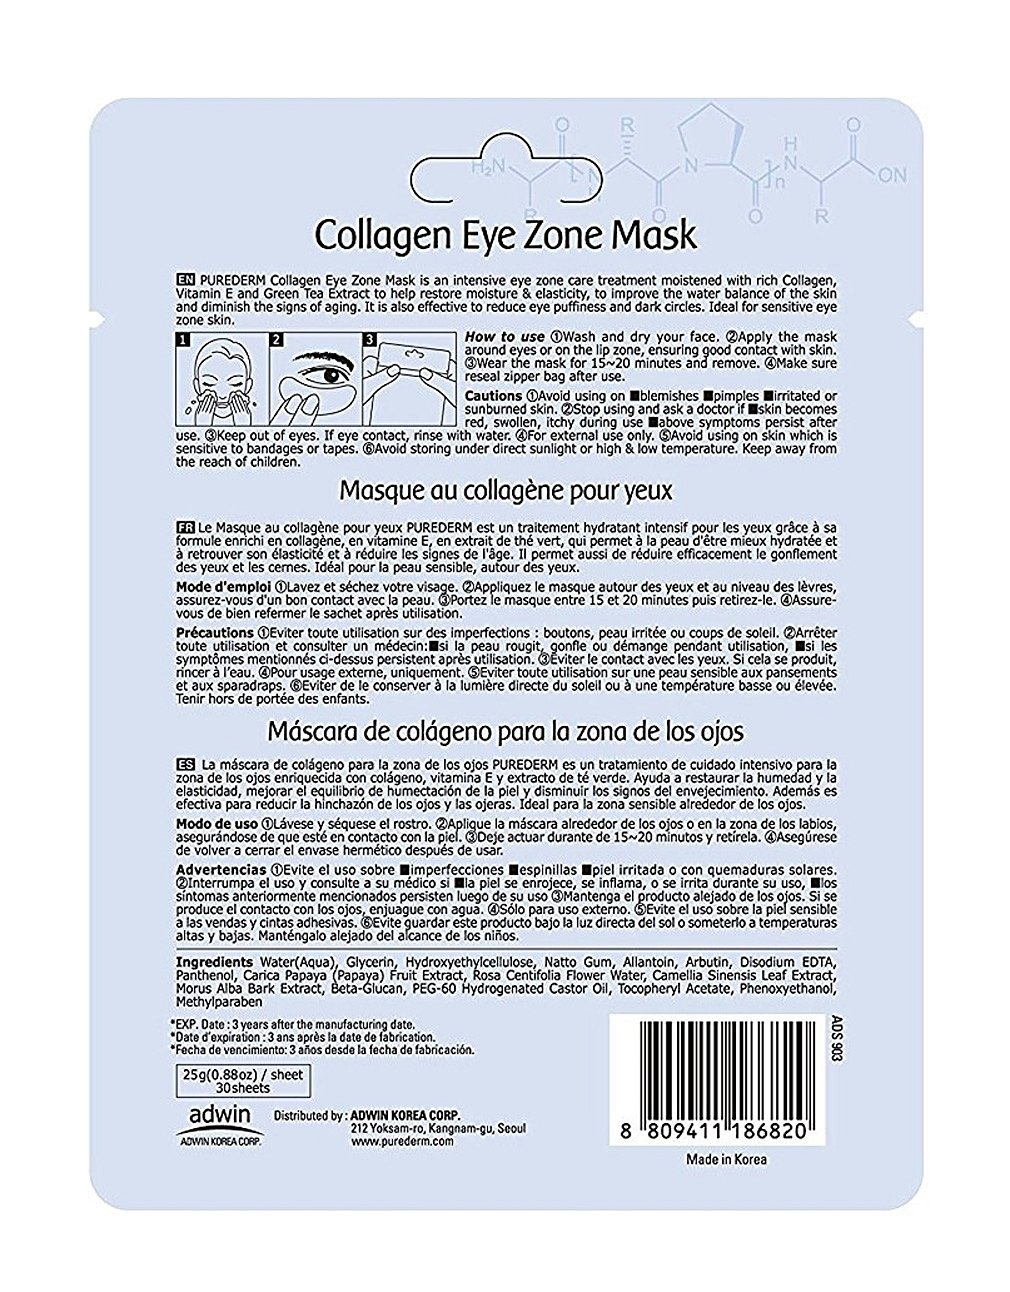 Purederm Collagen Eye Zone Pad Patches Mask Wrinkle Care Ads 202 Eyes Beauty Personal Tibs